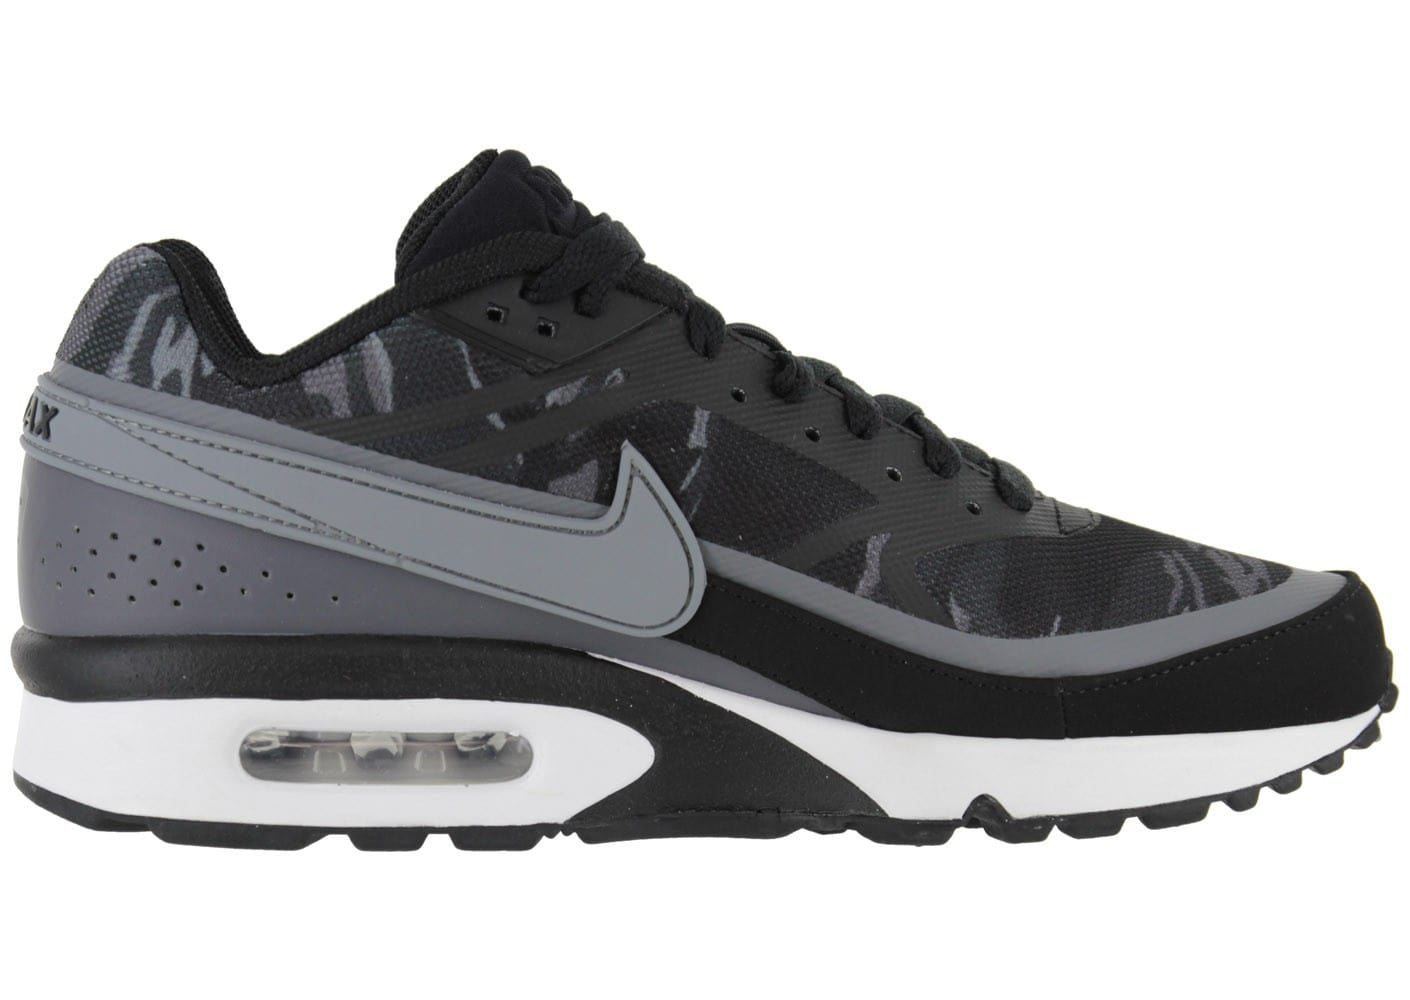 Nike Air Max Bw Premium Tape Camo Chaussures Baskets homme